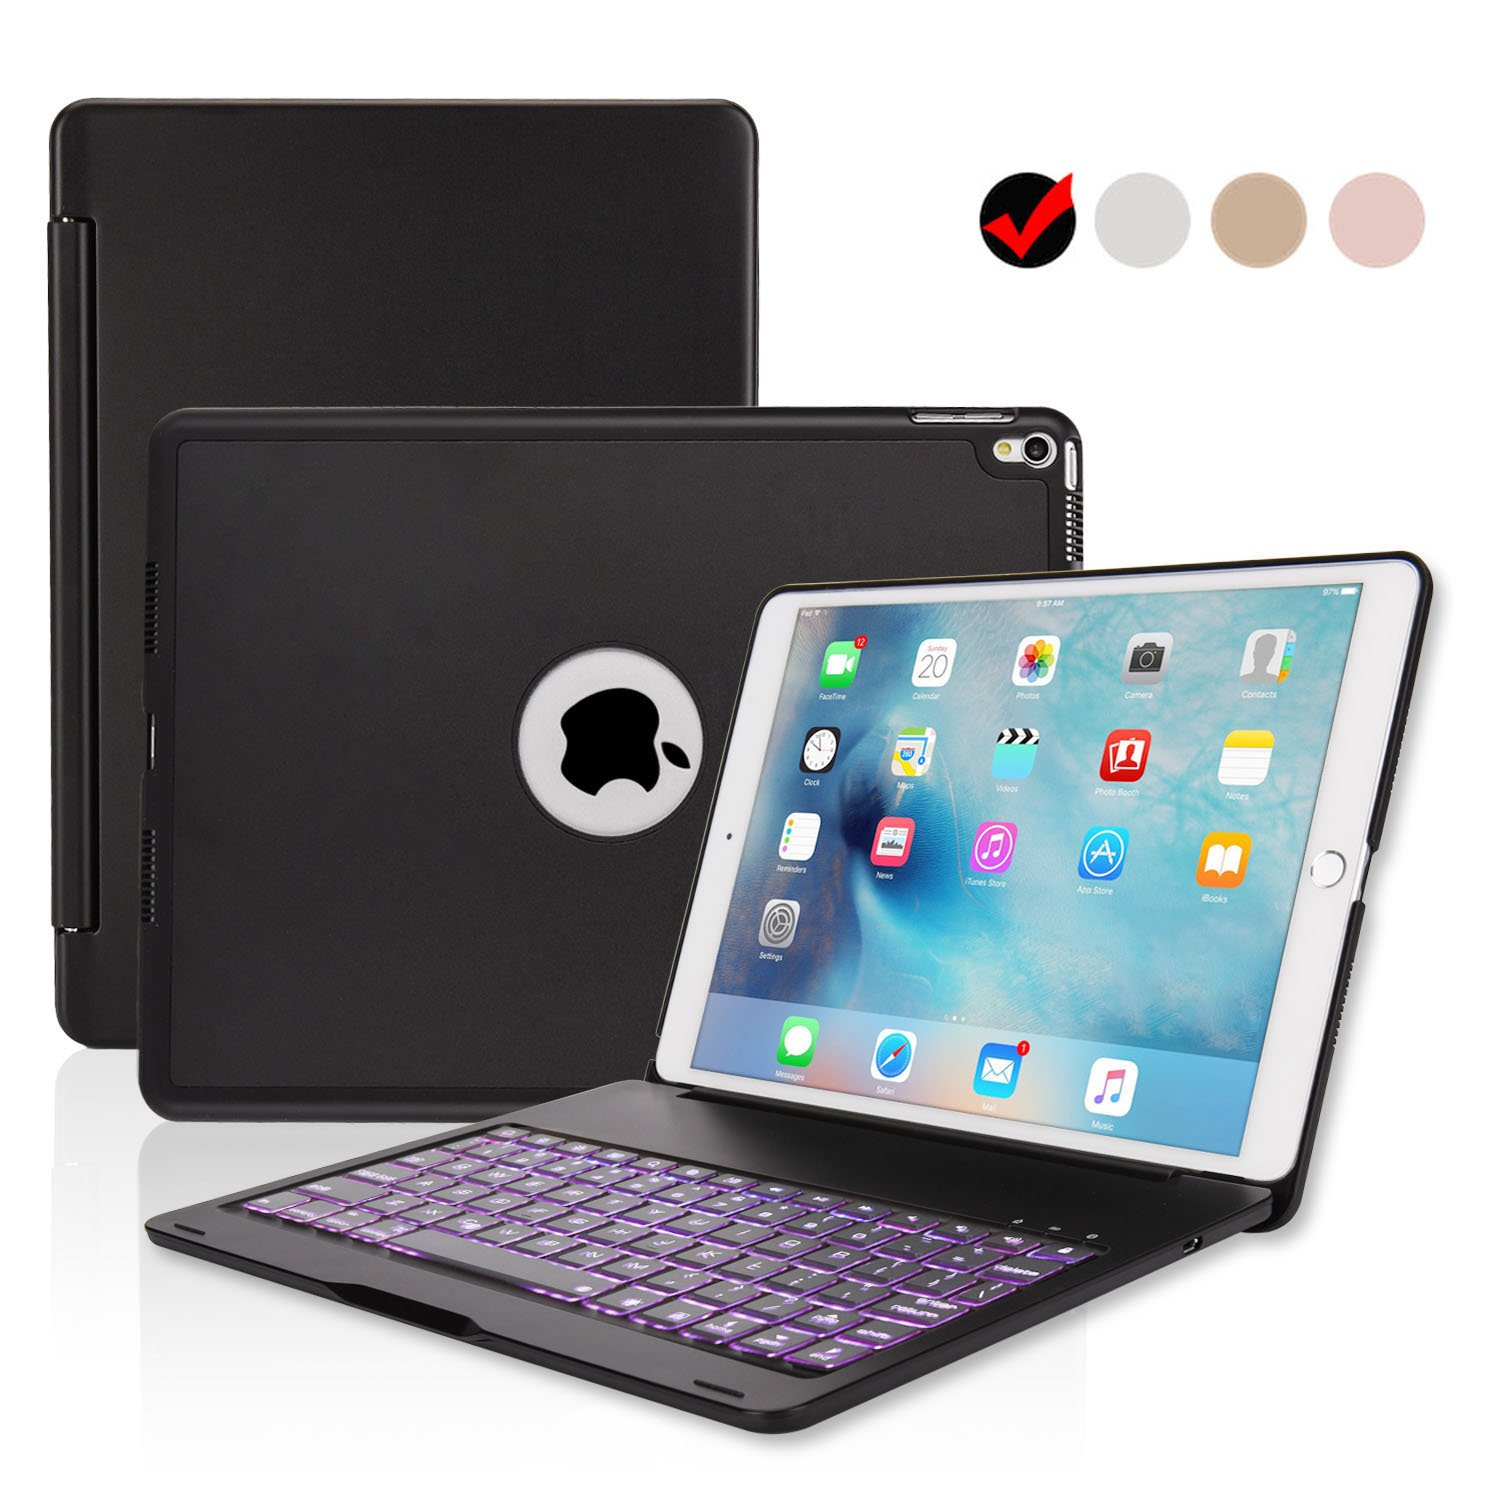 ipad Pro 10.5 Keyboard Case, ONHI Wireless Bluetooth Keyboard Case Aluminum shell Smart Folio Case with 7 Colors Back-lit, Auto Sleep / Wake, Silent Typing, the Screen can be Rotated 135 °(Black) by ONHI